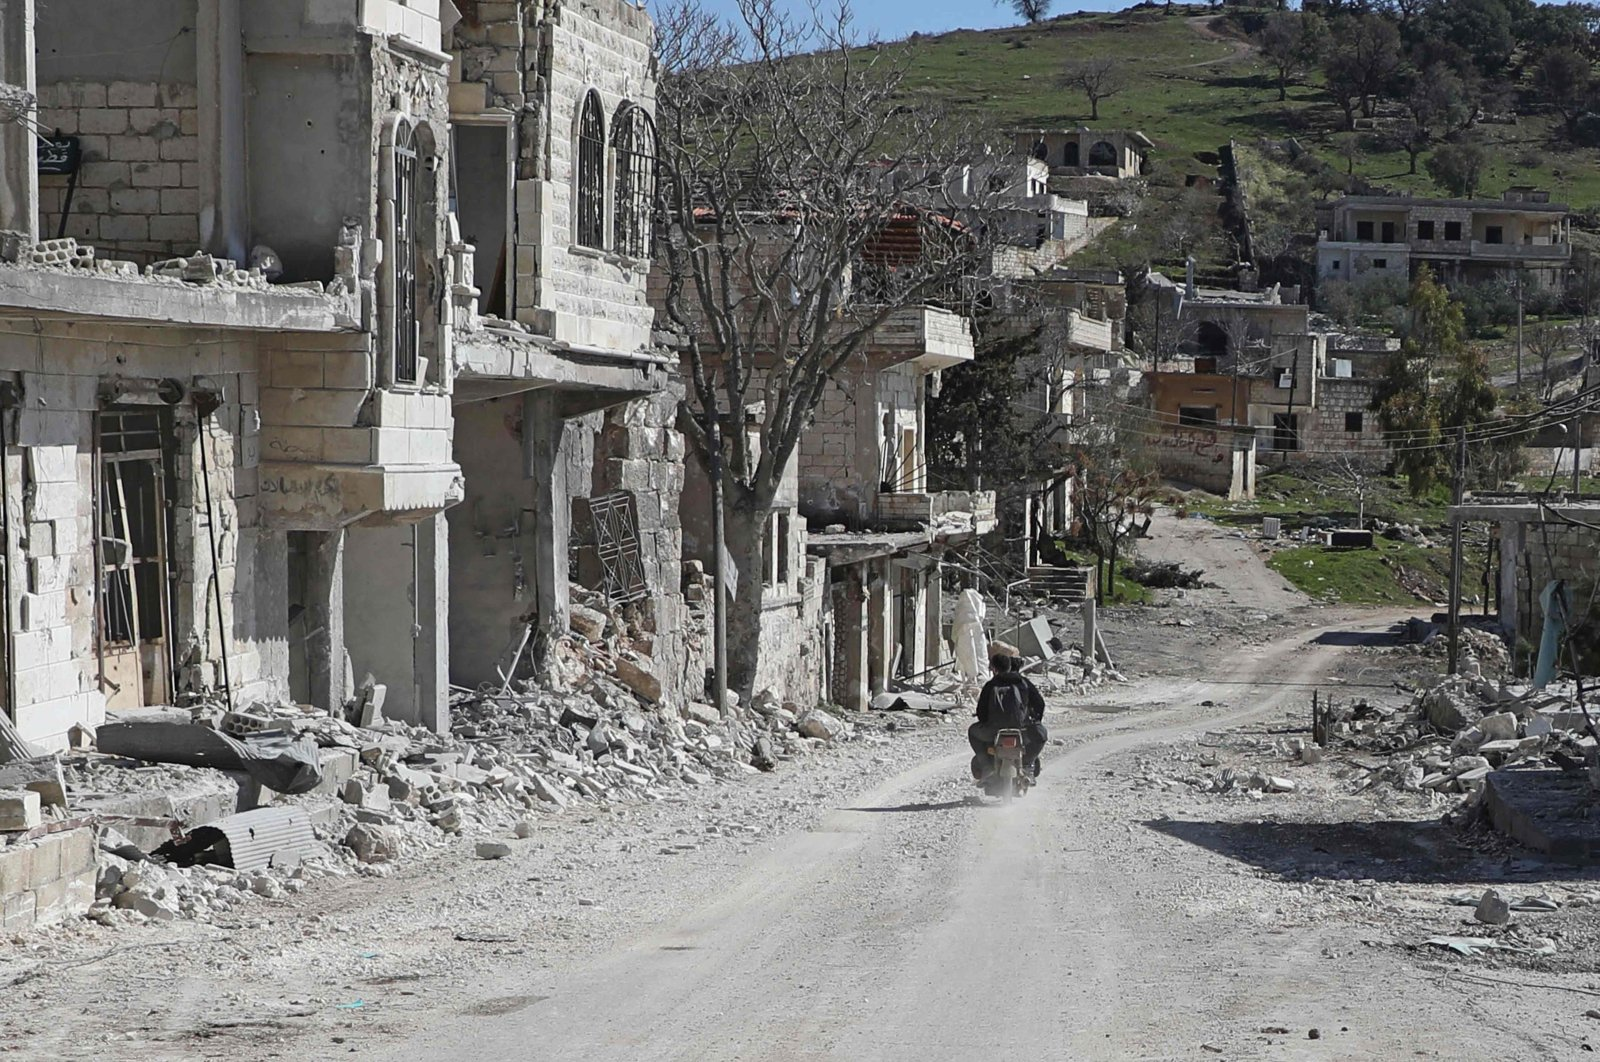 Syrians ride a motorcycle past destroyed buildings in the village of Kafr Oweid in al-Zawiya Mountain region of Syria's northwestern province of Idlib on March 8, 2020, following a Russian-Turkish ceasefire deal. (AFP Photo)